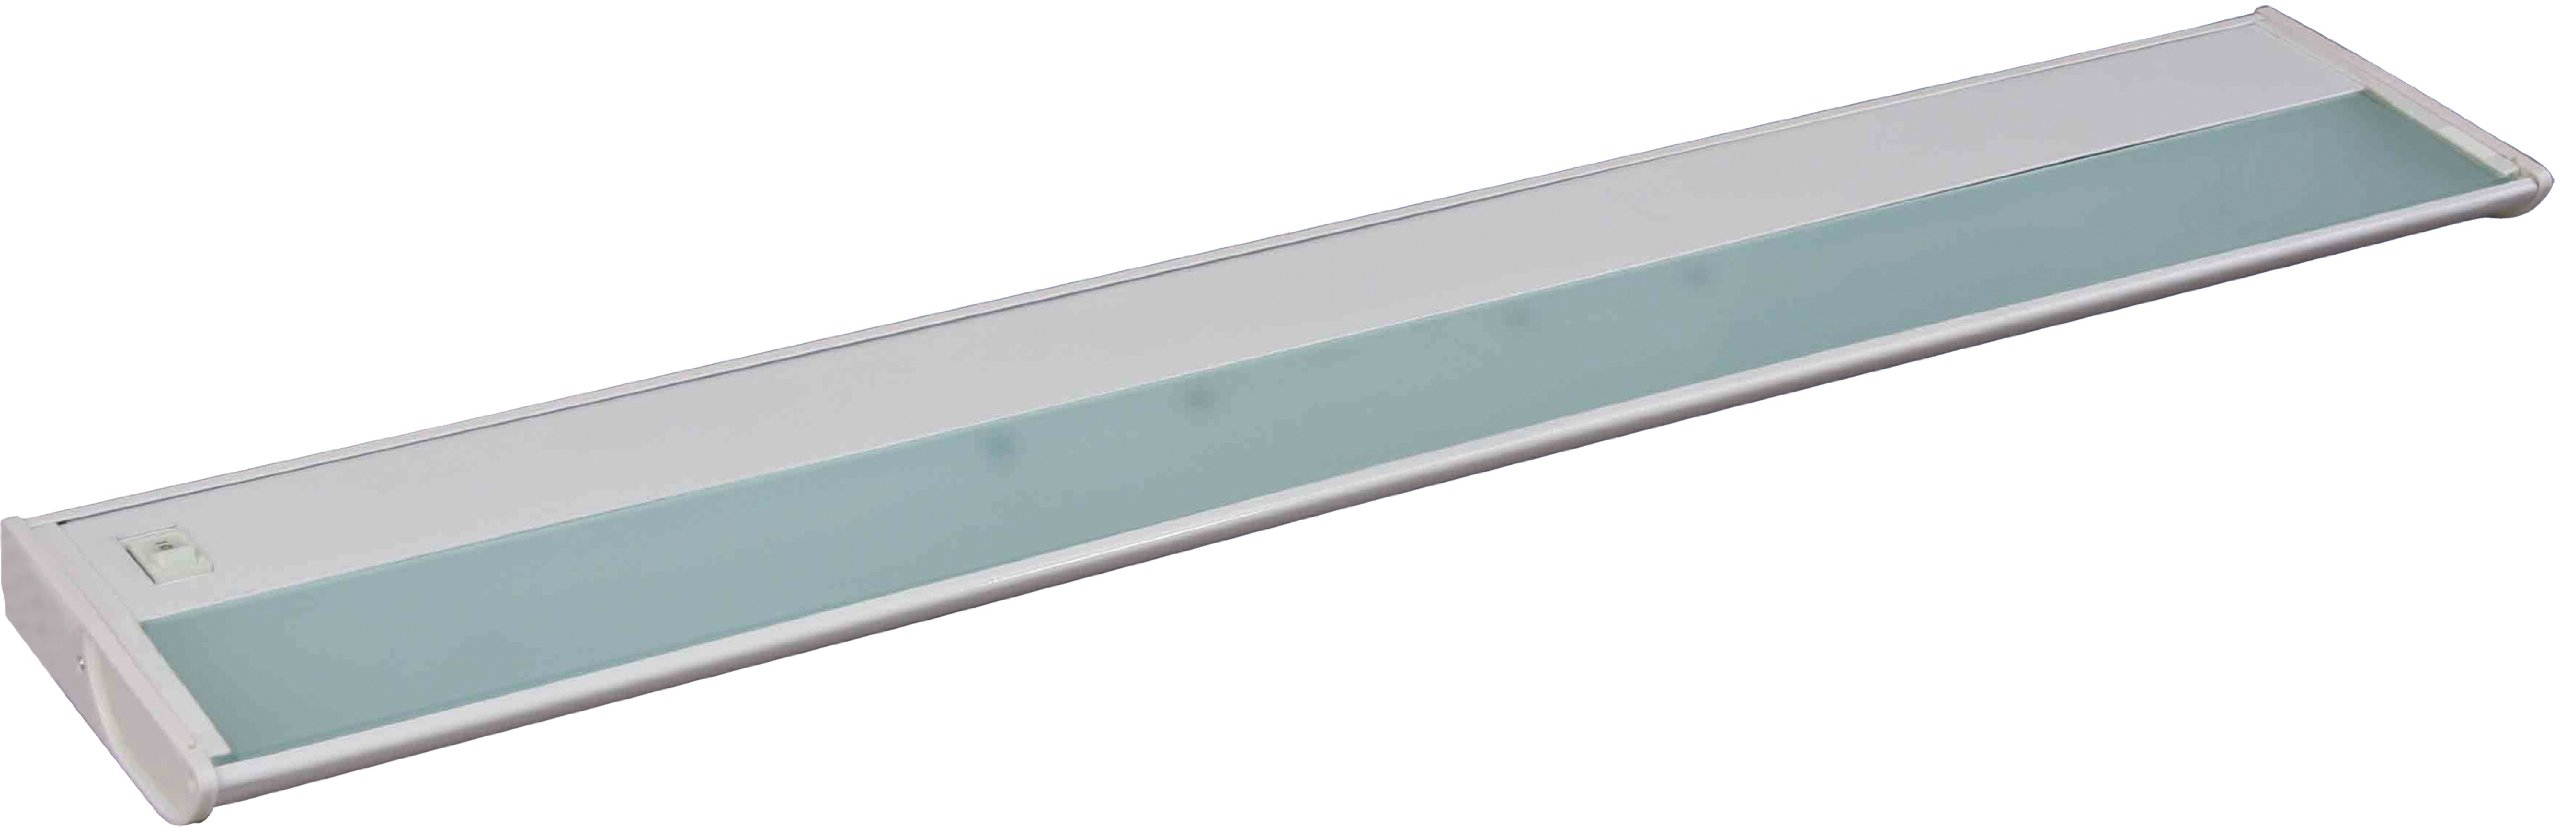 Maxim 87833WT CounterMax MX-X120 30'' 4-Light 120V Xenon, White Finish, Glass, G8 Xenon Xenon Bulb , 12W Max., Wet Safety Rating, 3000K Color Temp, ELV Dimmable, Glass Shade Material, 840 Rated Lumens